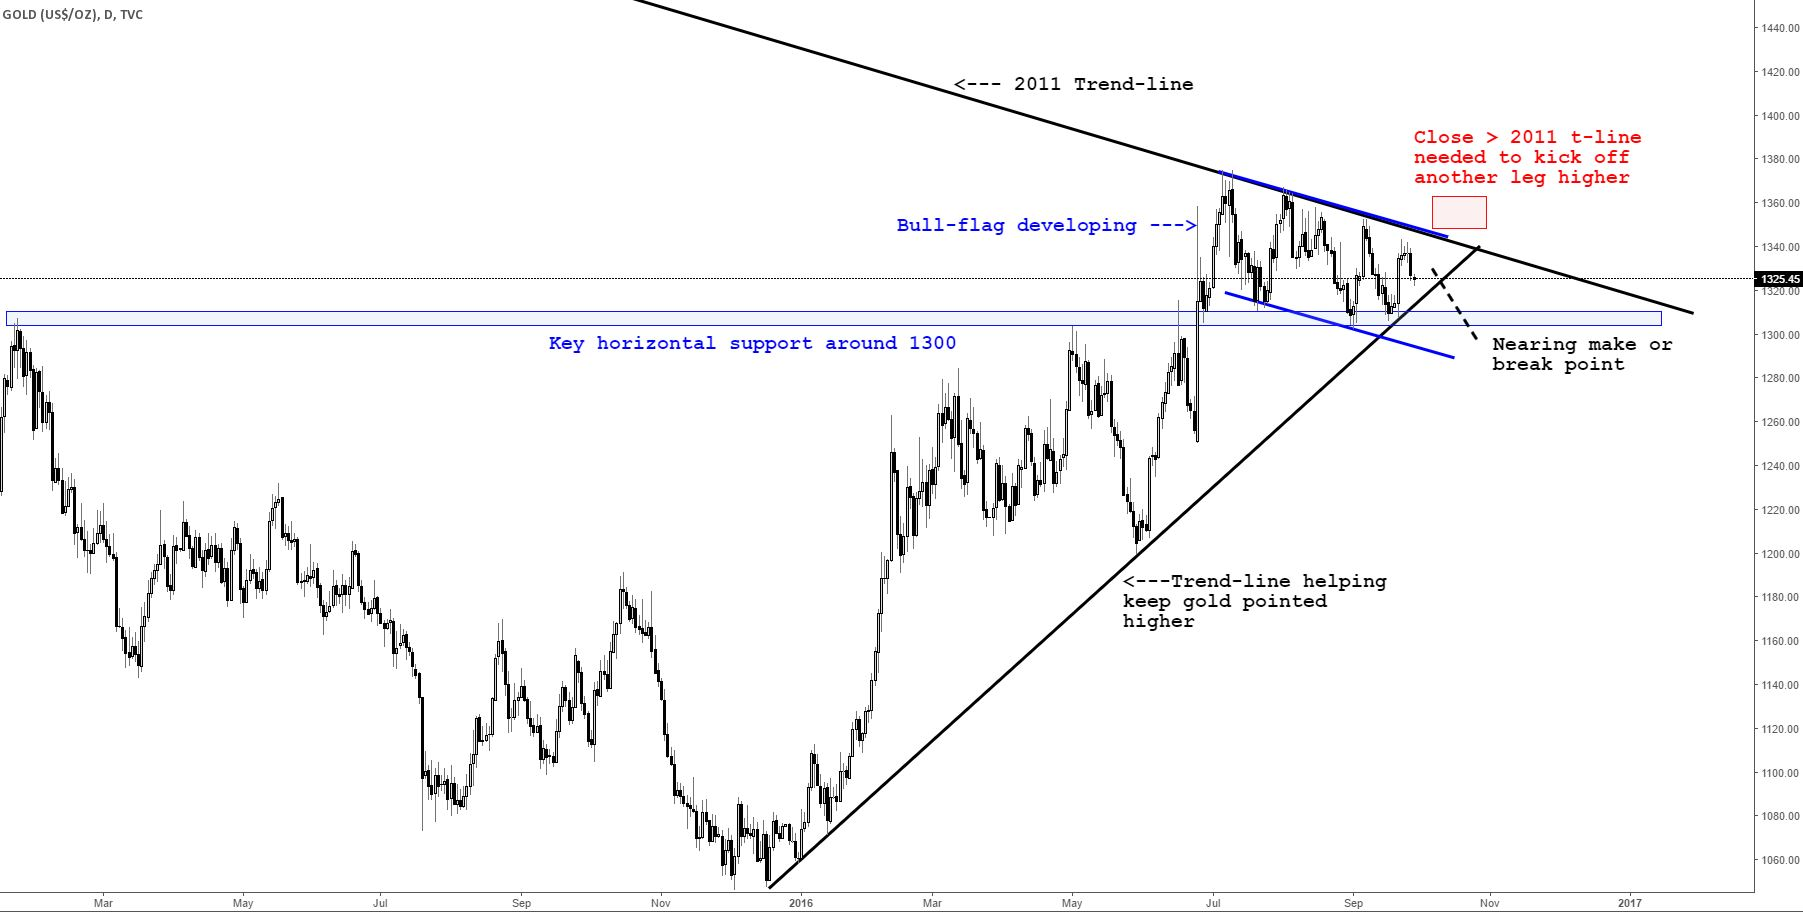 Silver Prices Looking to Hold Support, Monitoring Gold Closely